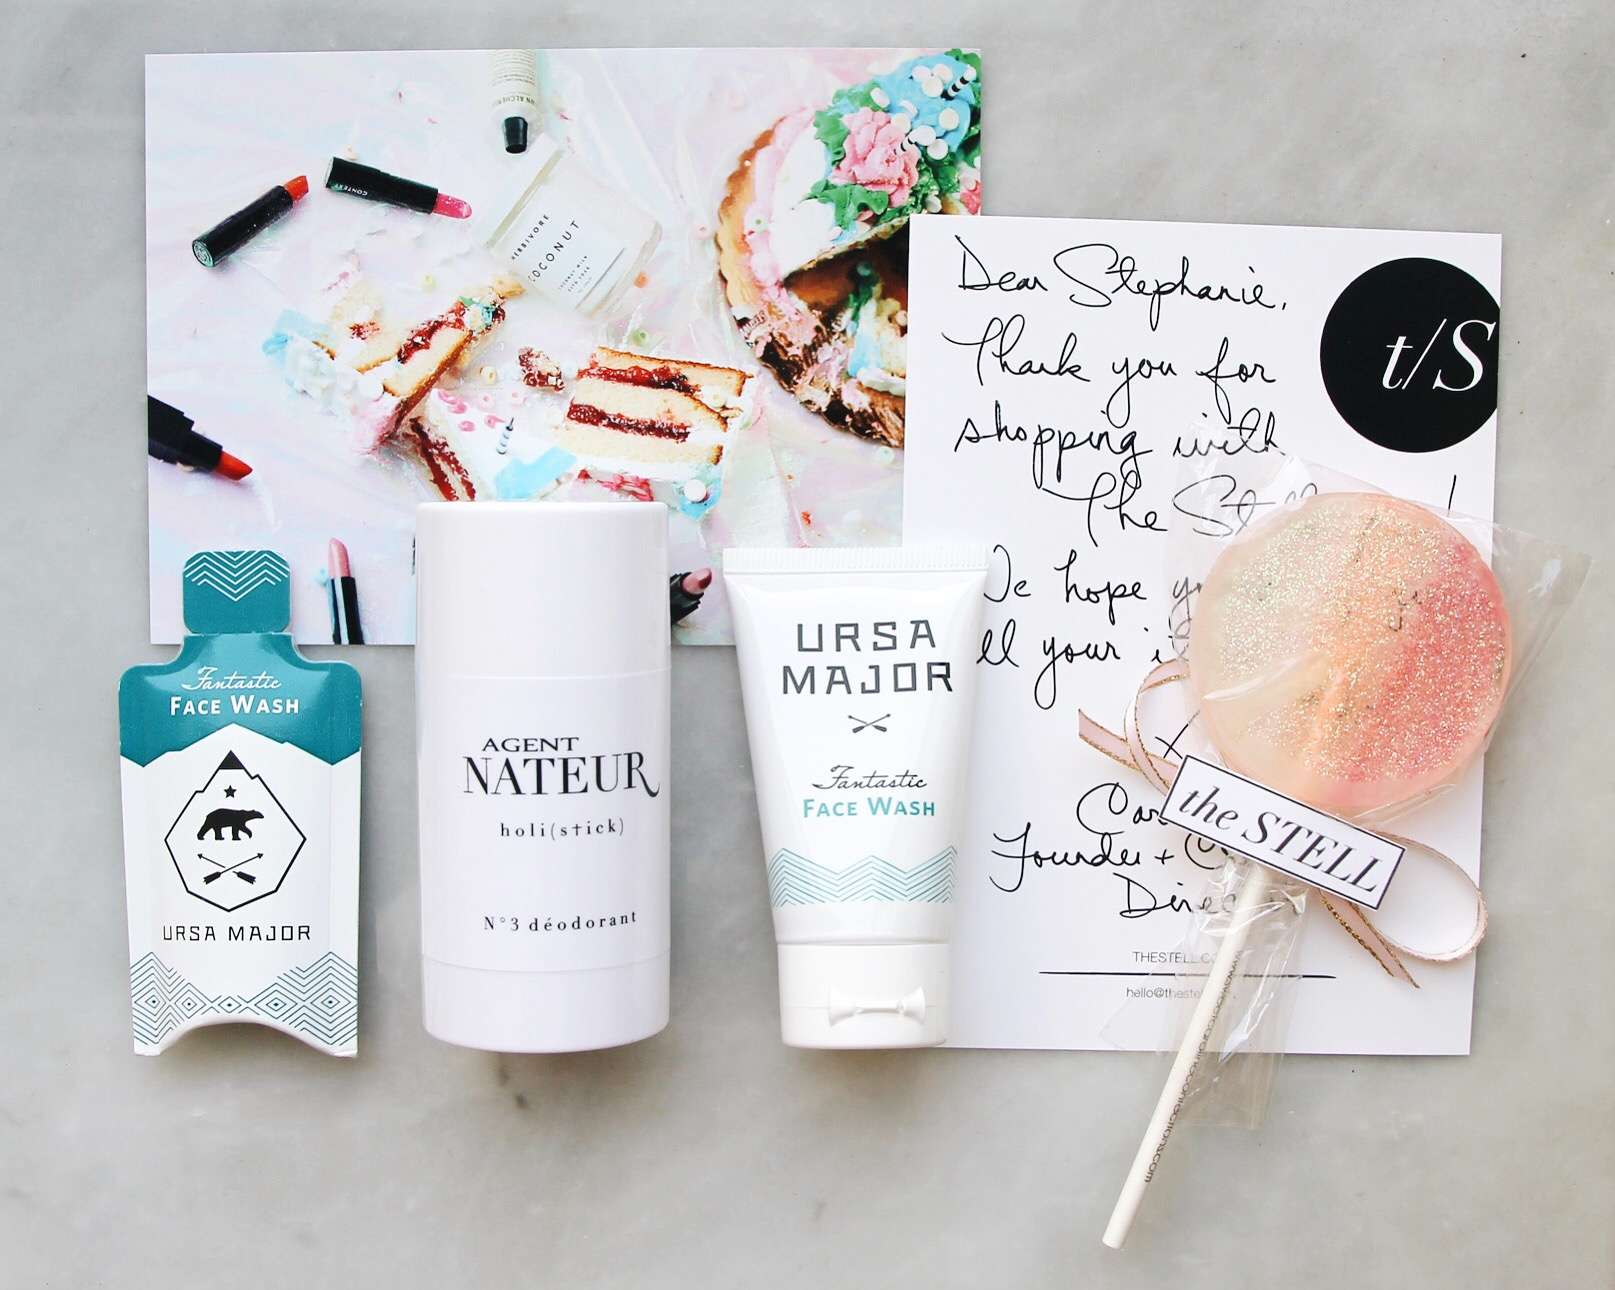 The Stell Order & Unboxing, Natural Beauty, The Stell, The Stell New York, Ursa Major, Agent Nateur